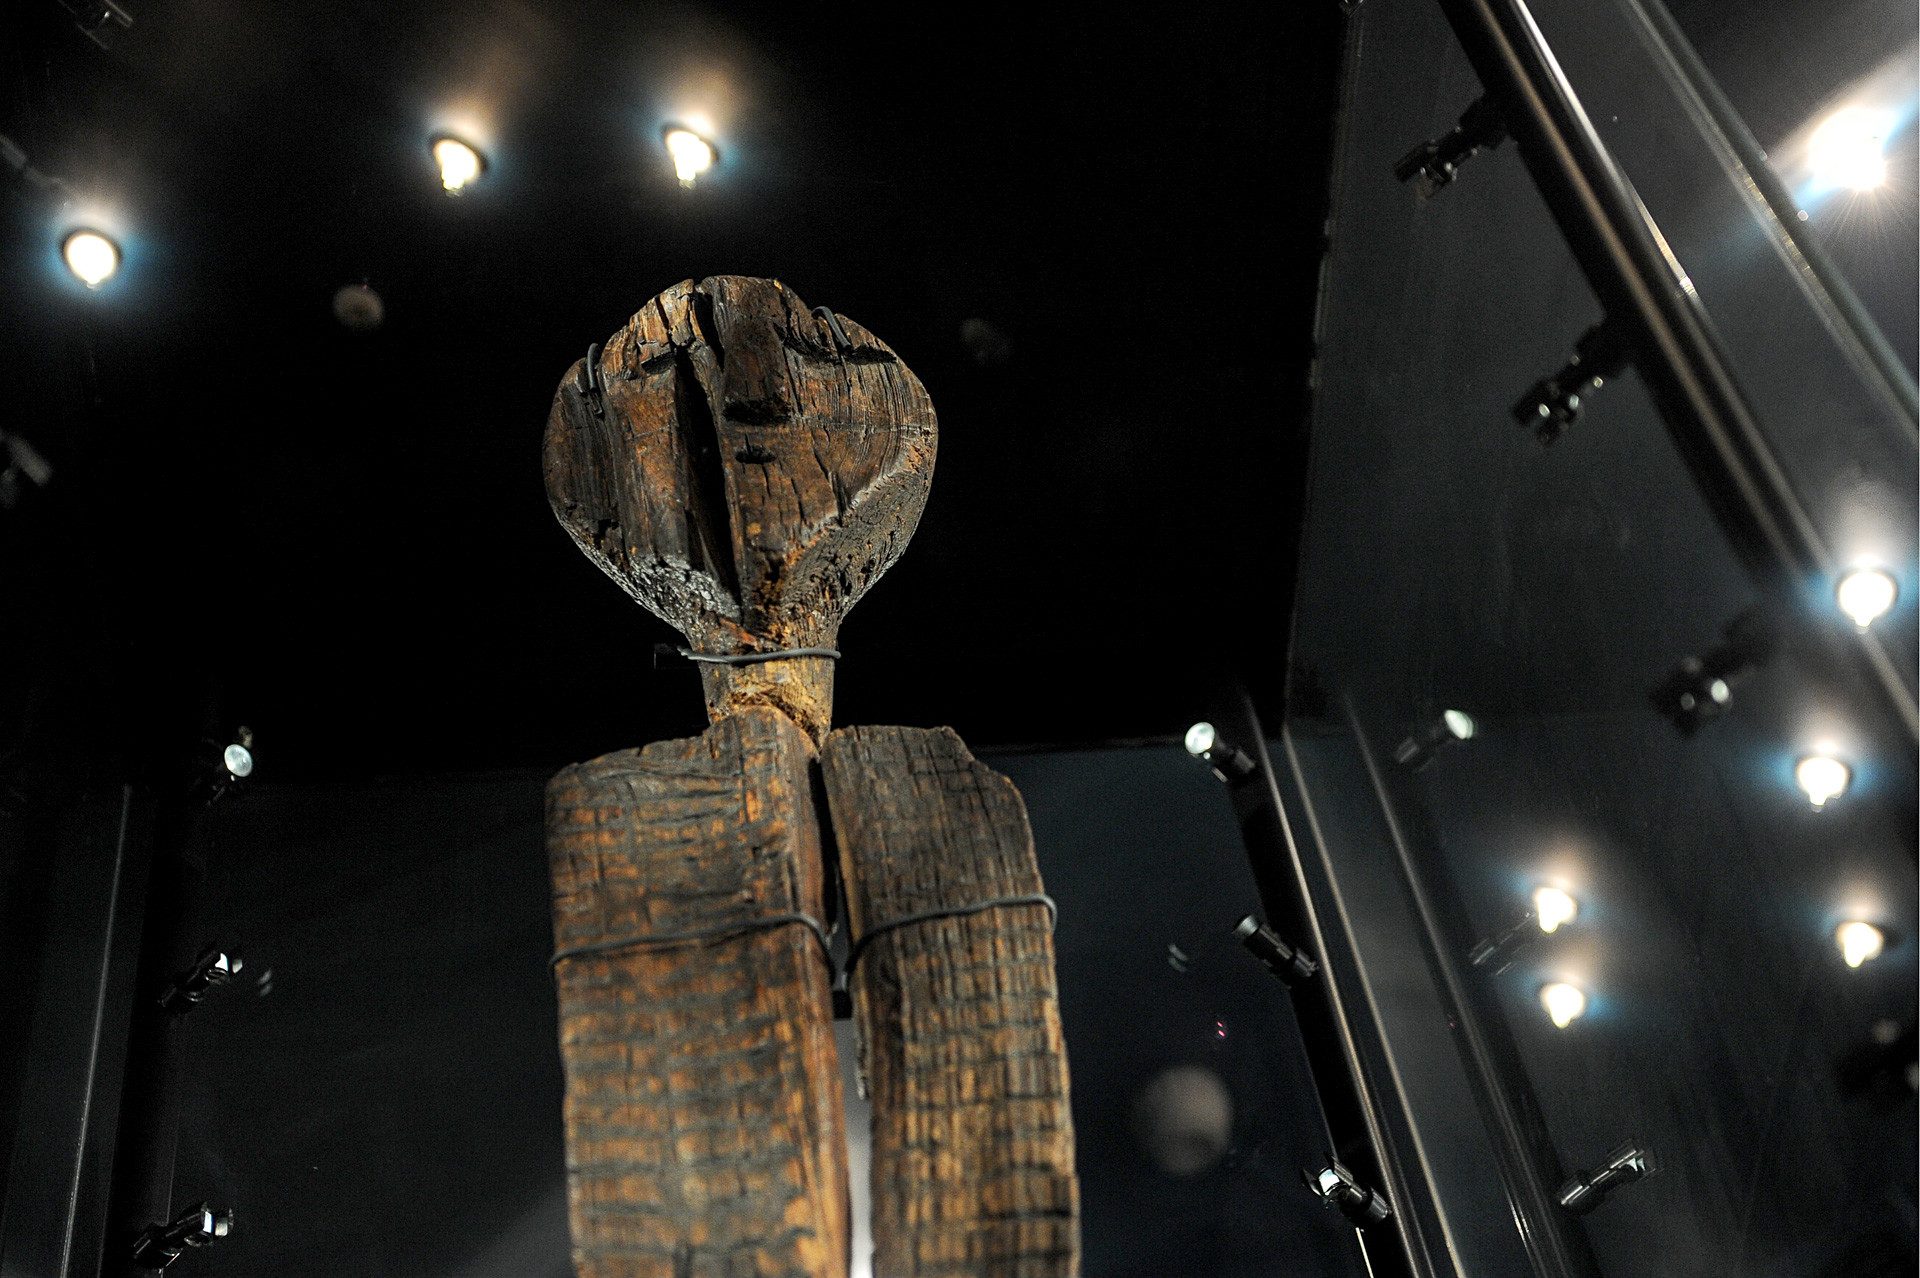 The Shigir Idol, the most ancient wooden sculpture, displayed at the Sverdlovsk Regional Lore Museum.